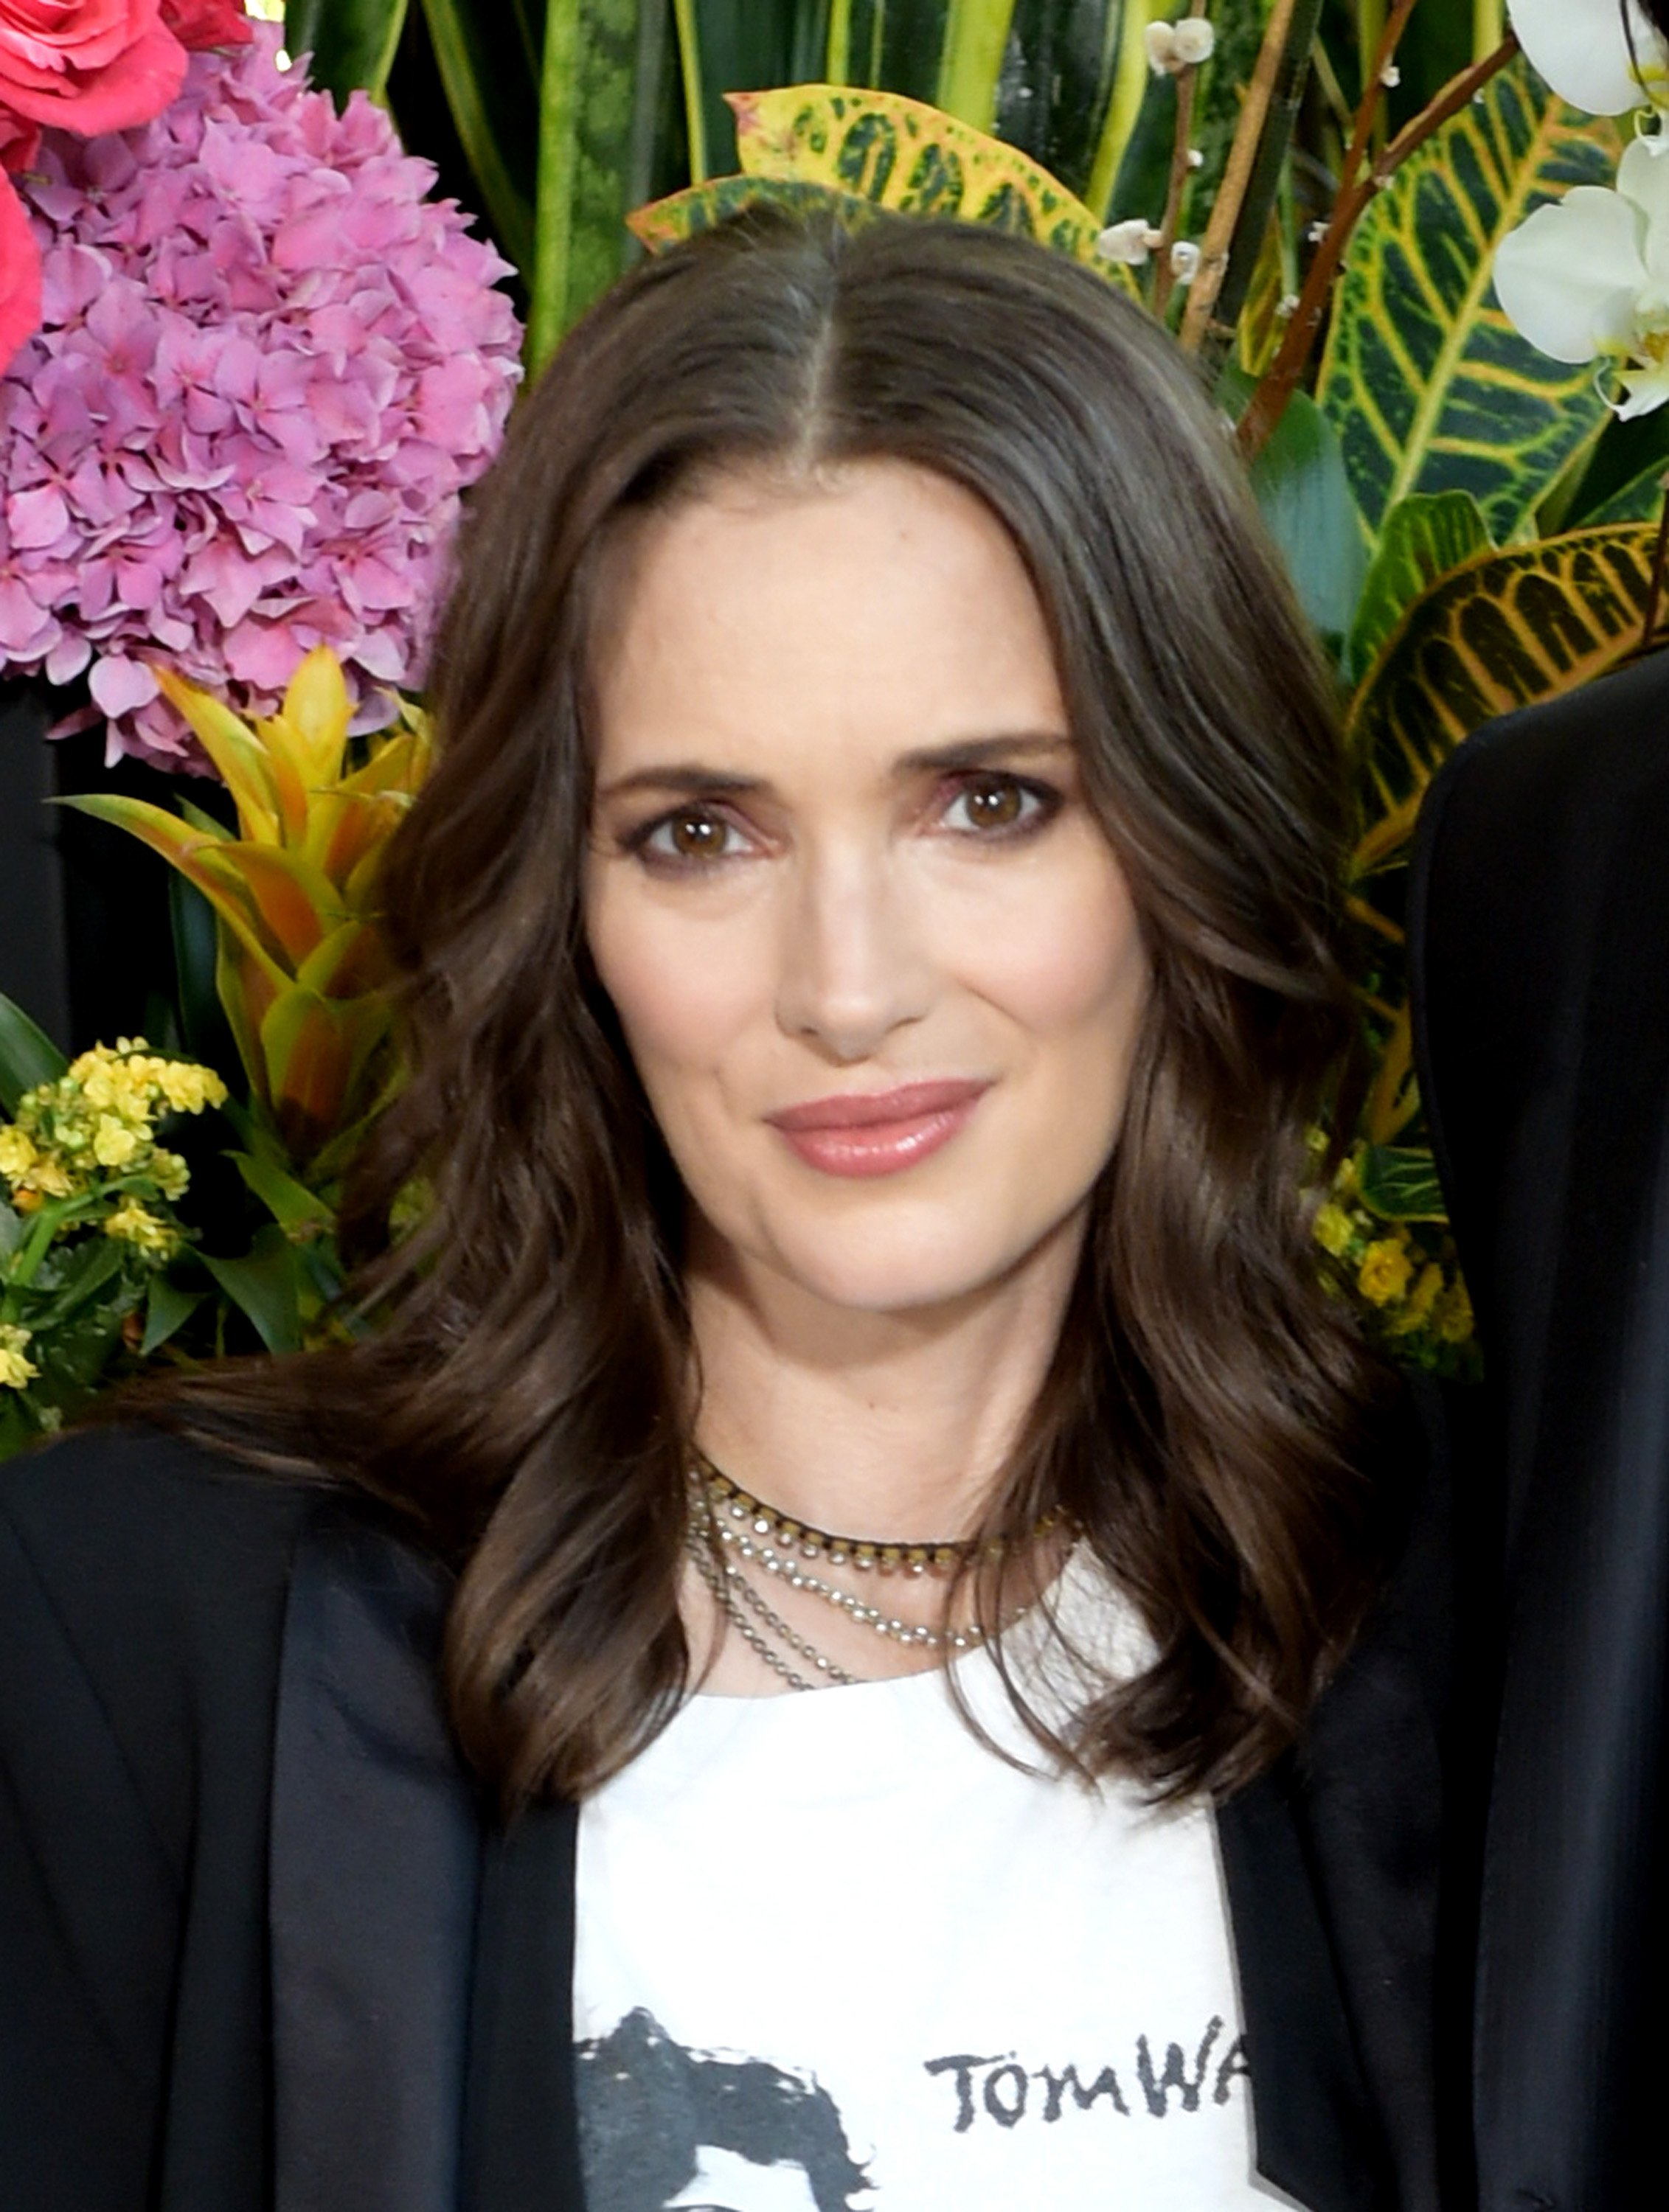 Winona Ryder, Los Angeles, Kalifornien, 2018 | Quelle: Getty Images